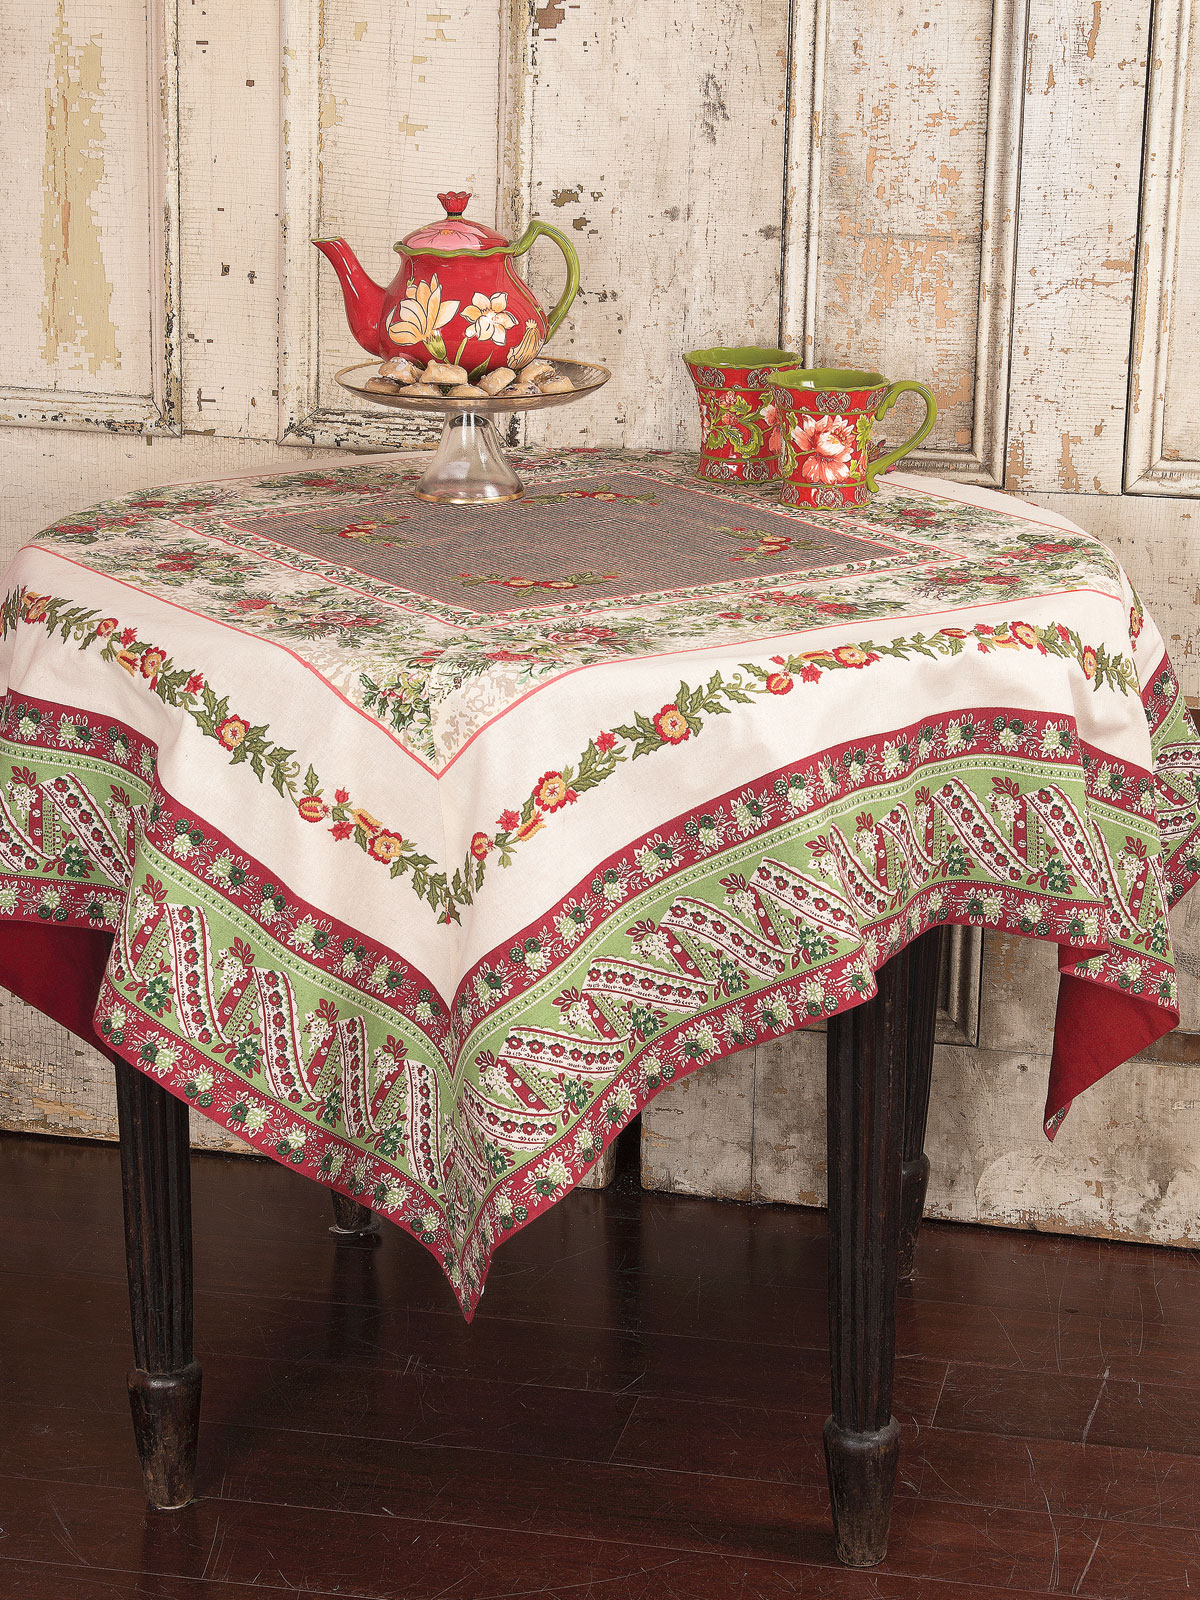 tablecloths marigoldliving table indian handmade linens covers decorative marigold